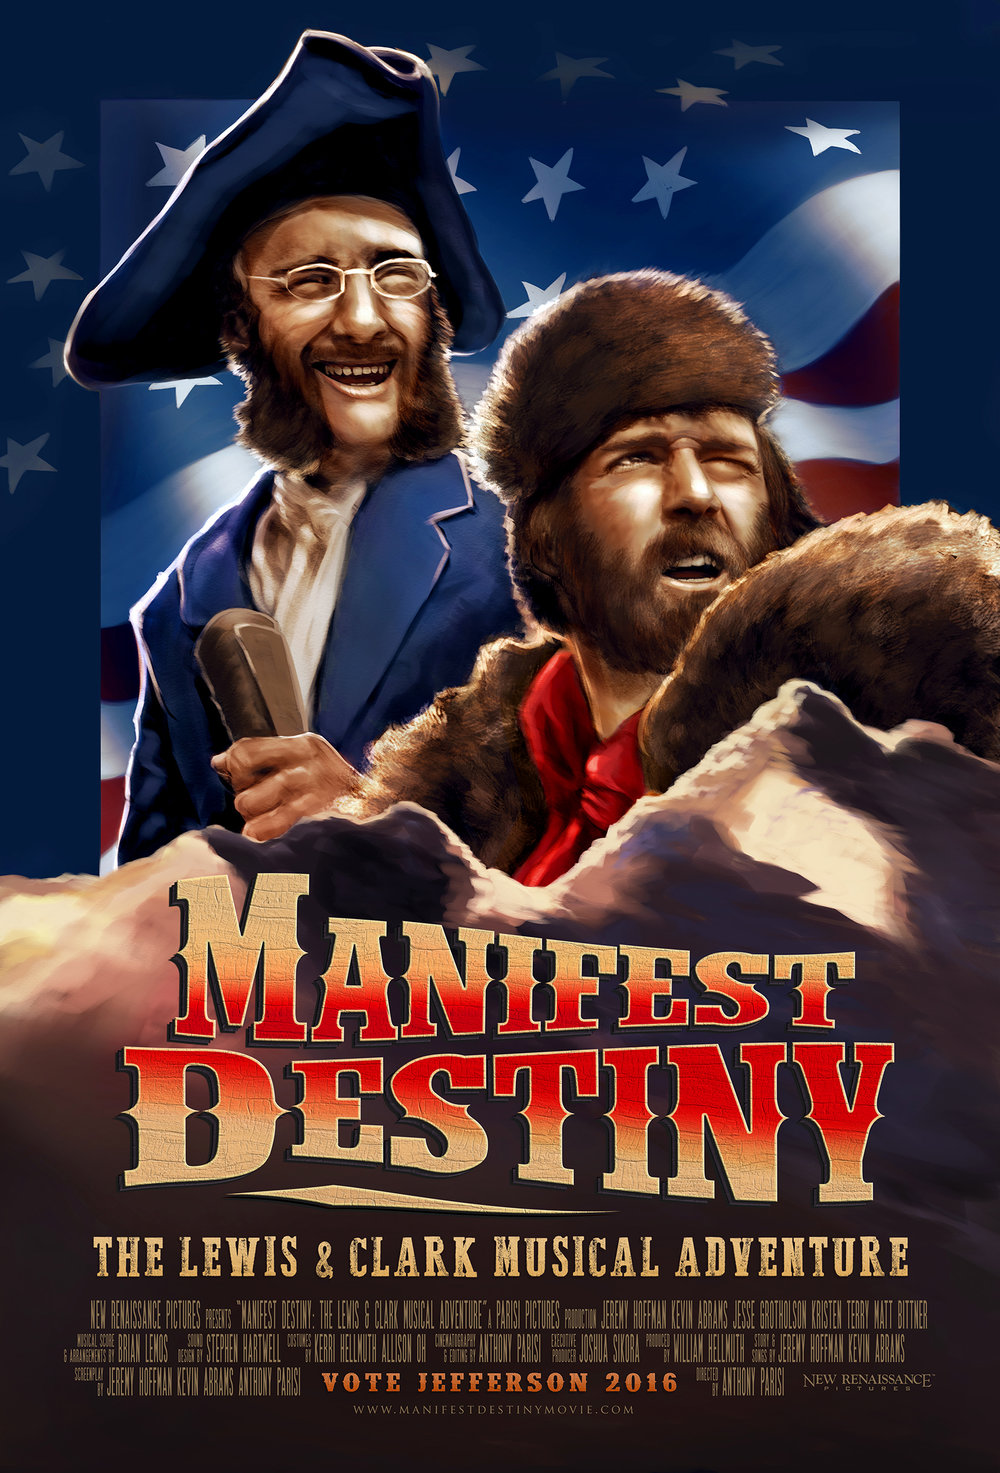 Manifest Destiny ––The Lewis & Clark Musical Adventure (2016) - With exaggerated, eye-popping style,this tall tale of Lewis and Clark becomes a romping spoof of American ego. Follow the explorers out on the trail as they discover that destiny may be anything but manifest.Based on a cult web series, this feature-length, musical allegory was hailed as